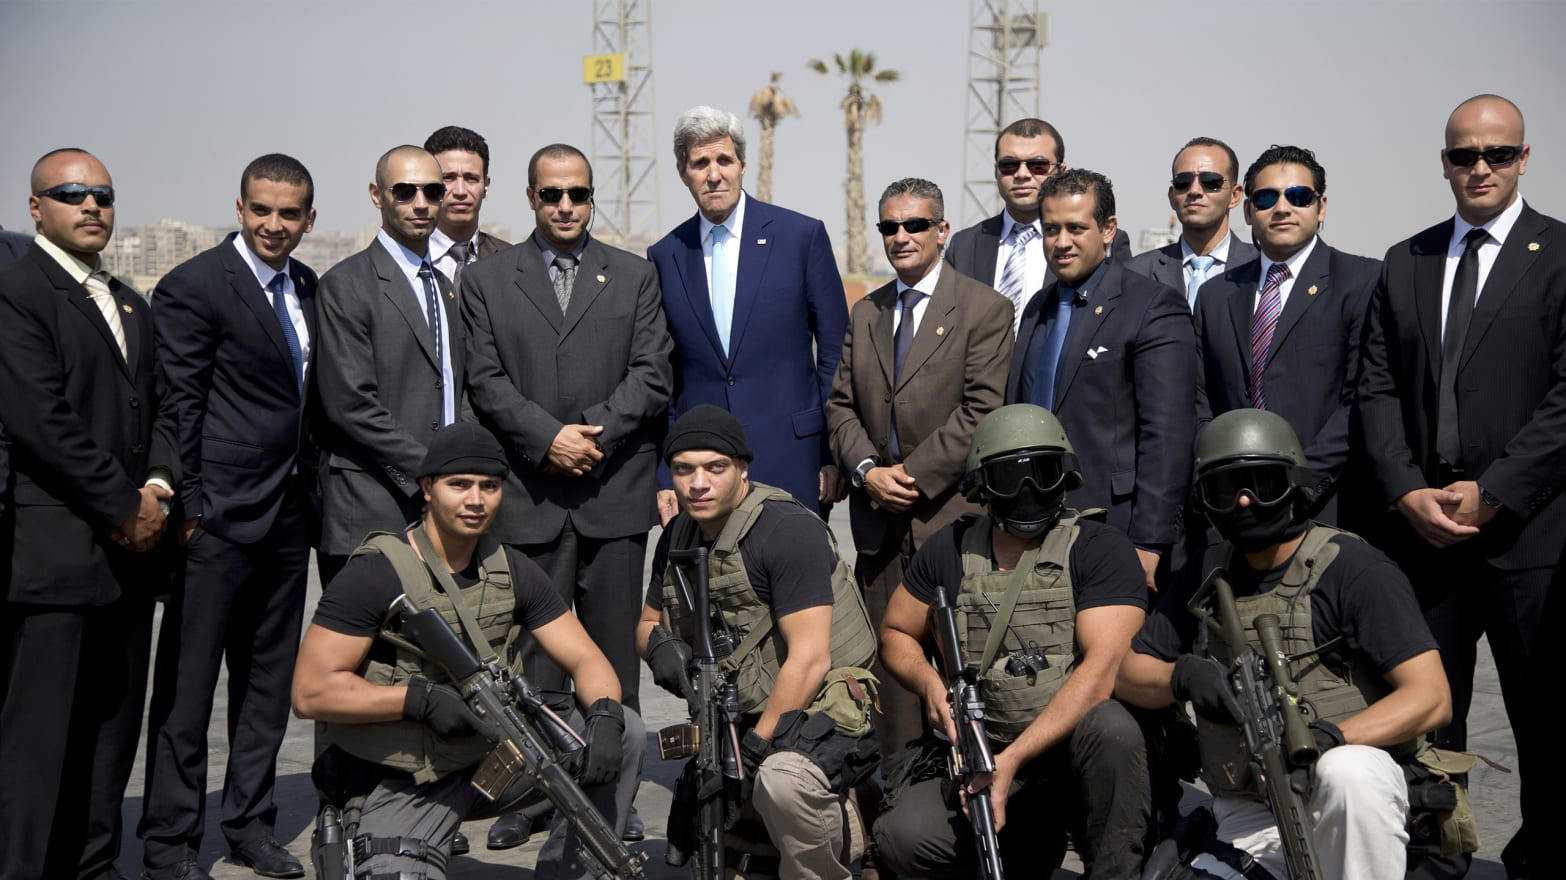 Presidential Security Service